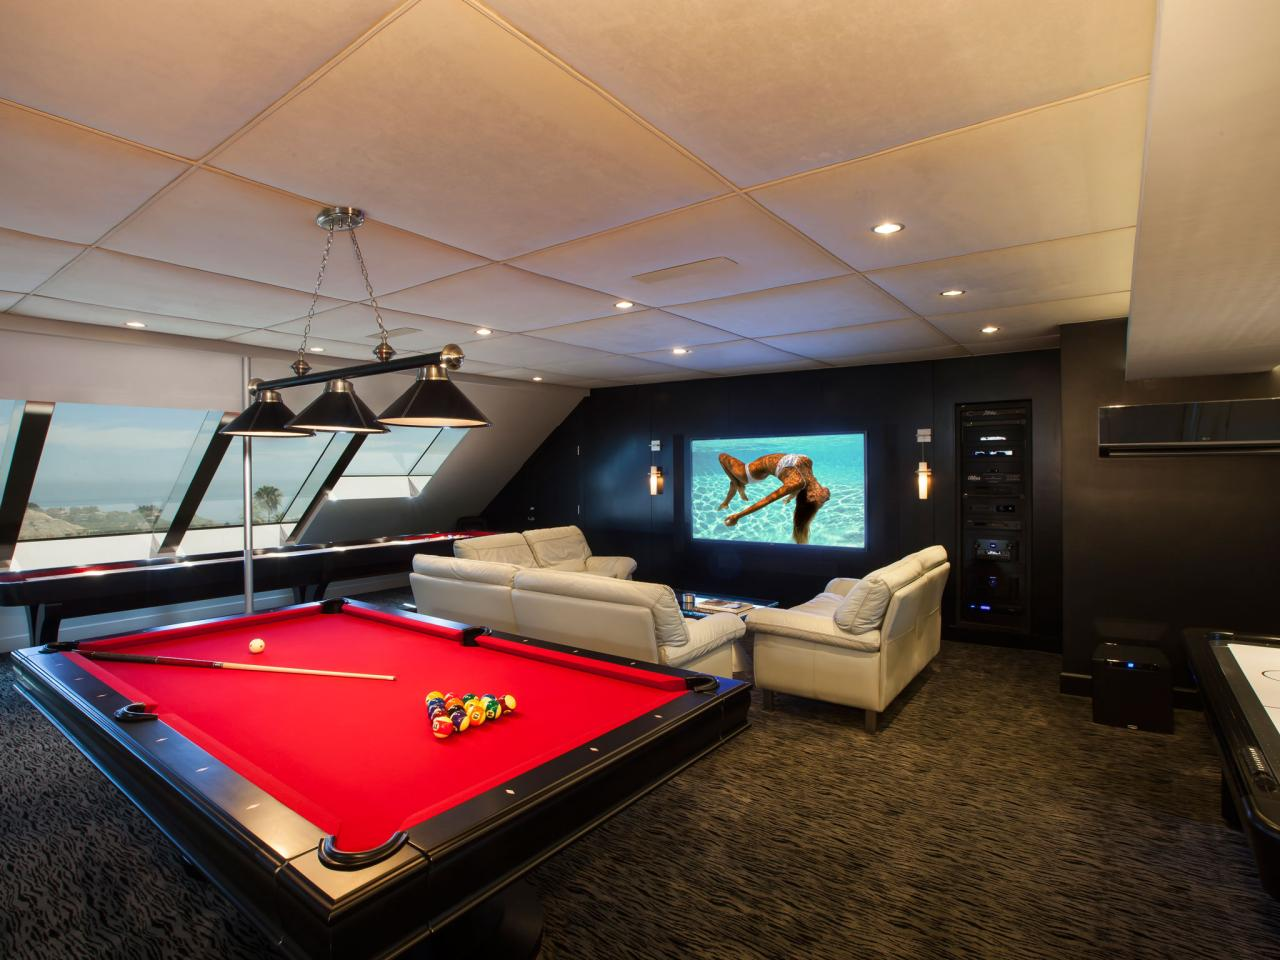 50 Best Man Cave Ideas and Designs for 2020 on Man Cave Patio Ideas id=96163